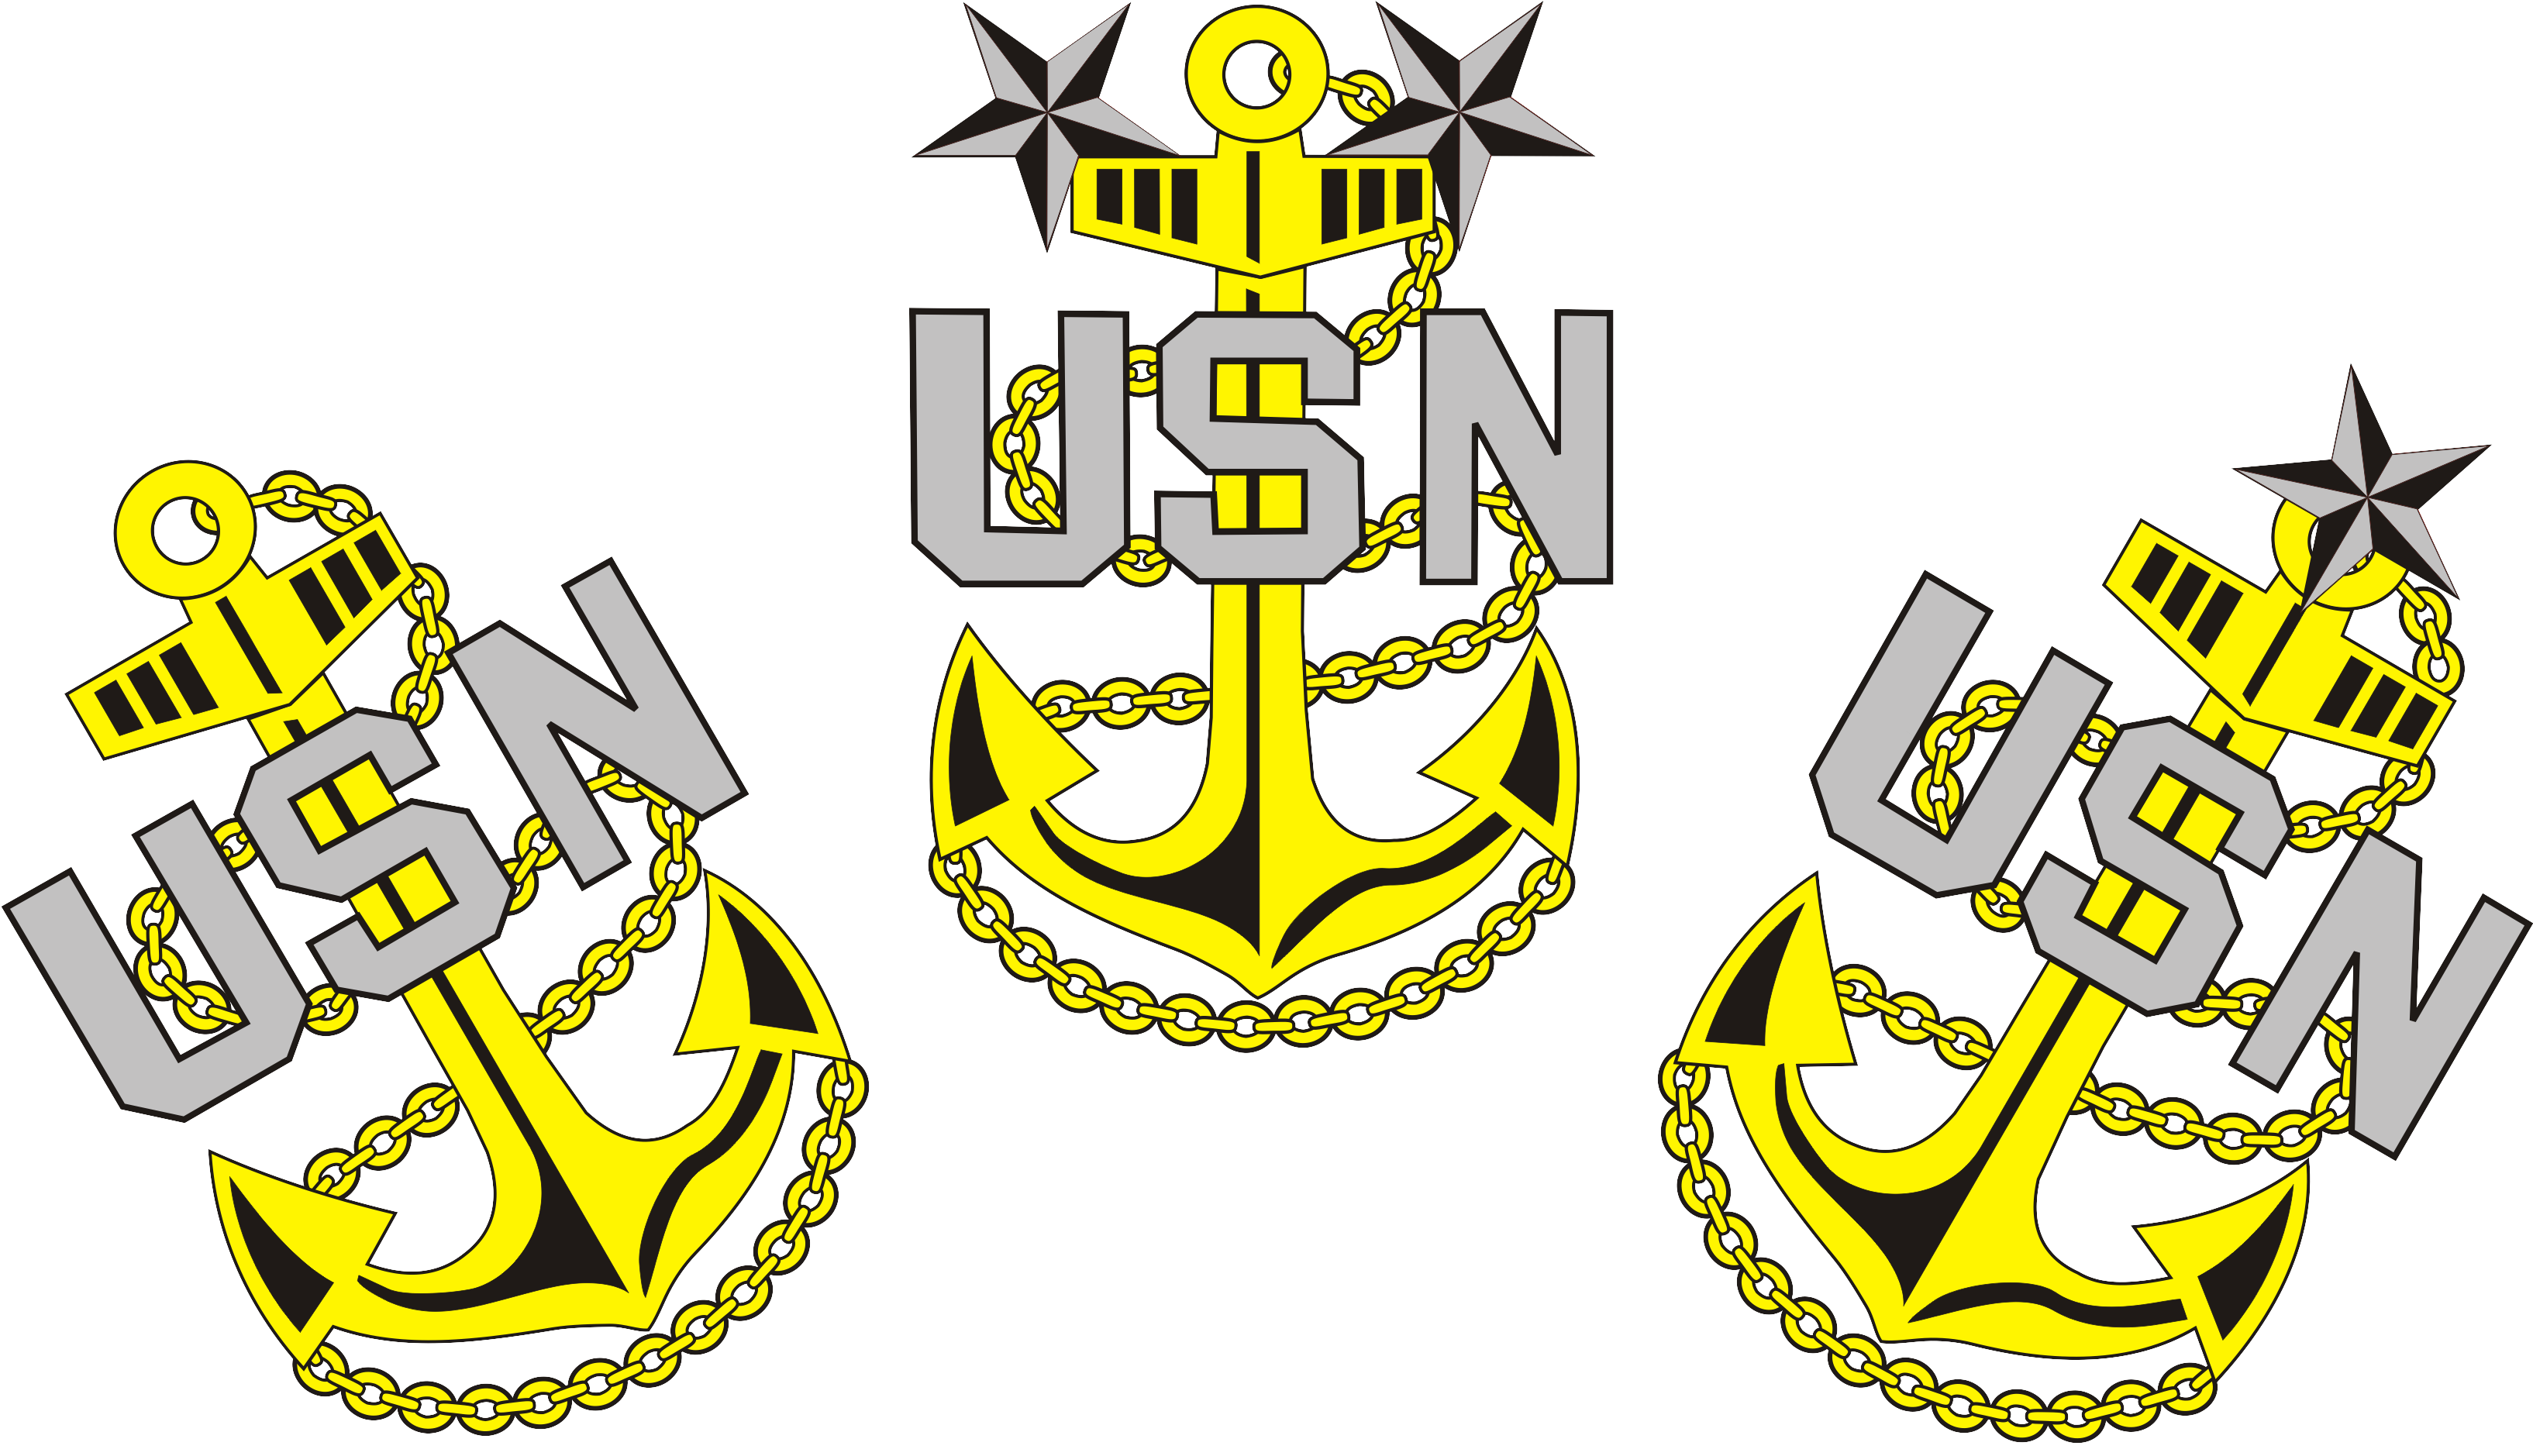 Navy officer cap device clipart no background clip free library HD Navy Chief Anchor Clipart - Chief Anchors , Free Unlimited ... clip free library